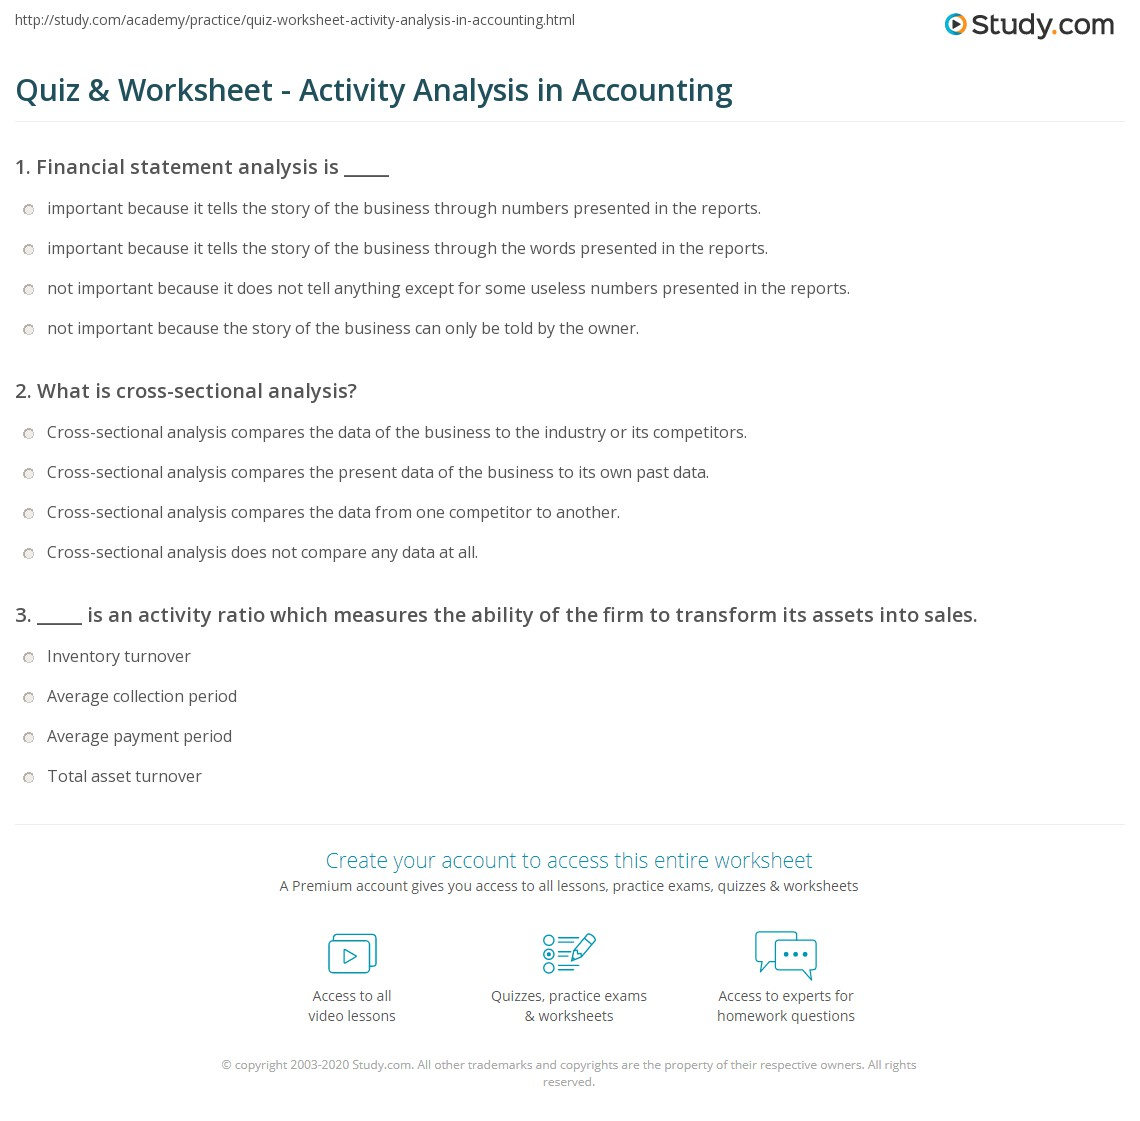 quiz worksheet activity analysis in accounting. Black Bedroom Furniture Sets. Home Design Ideas